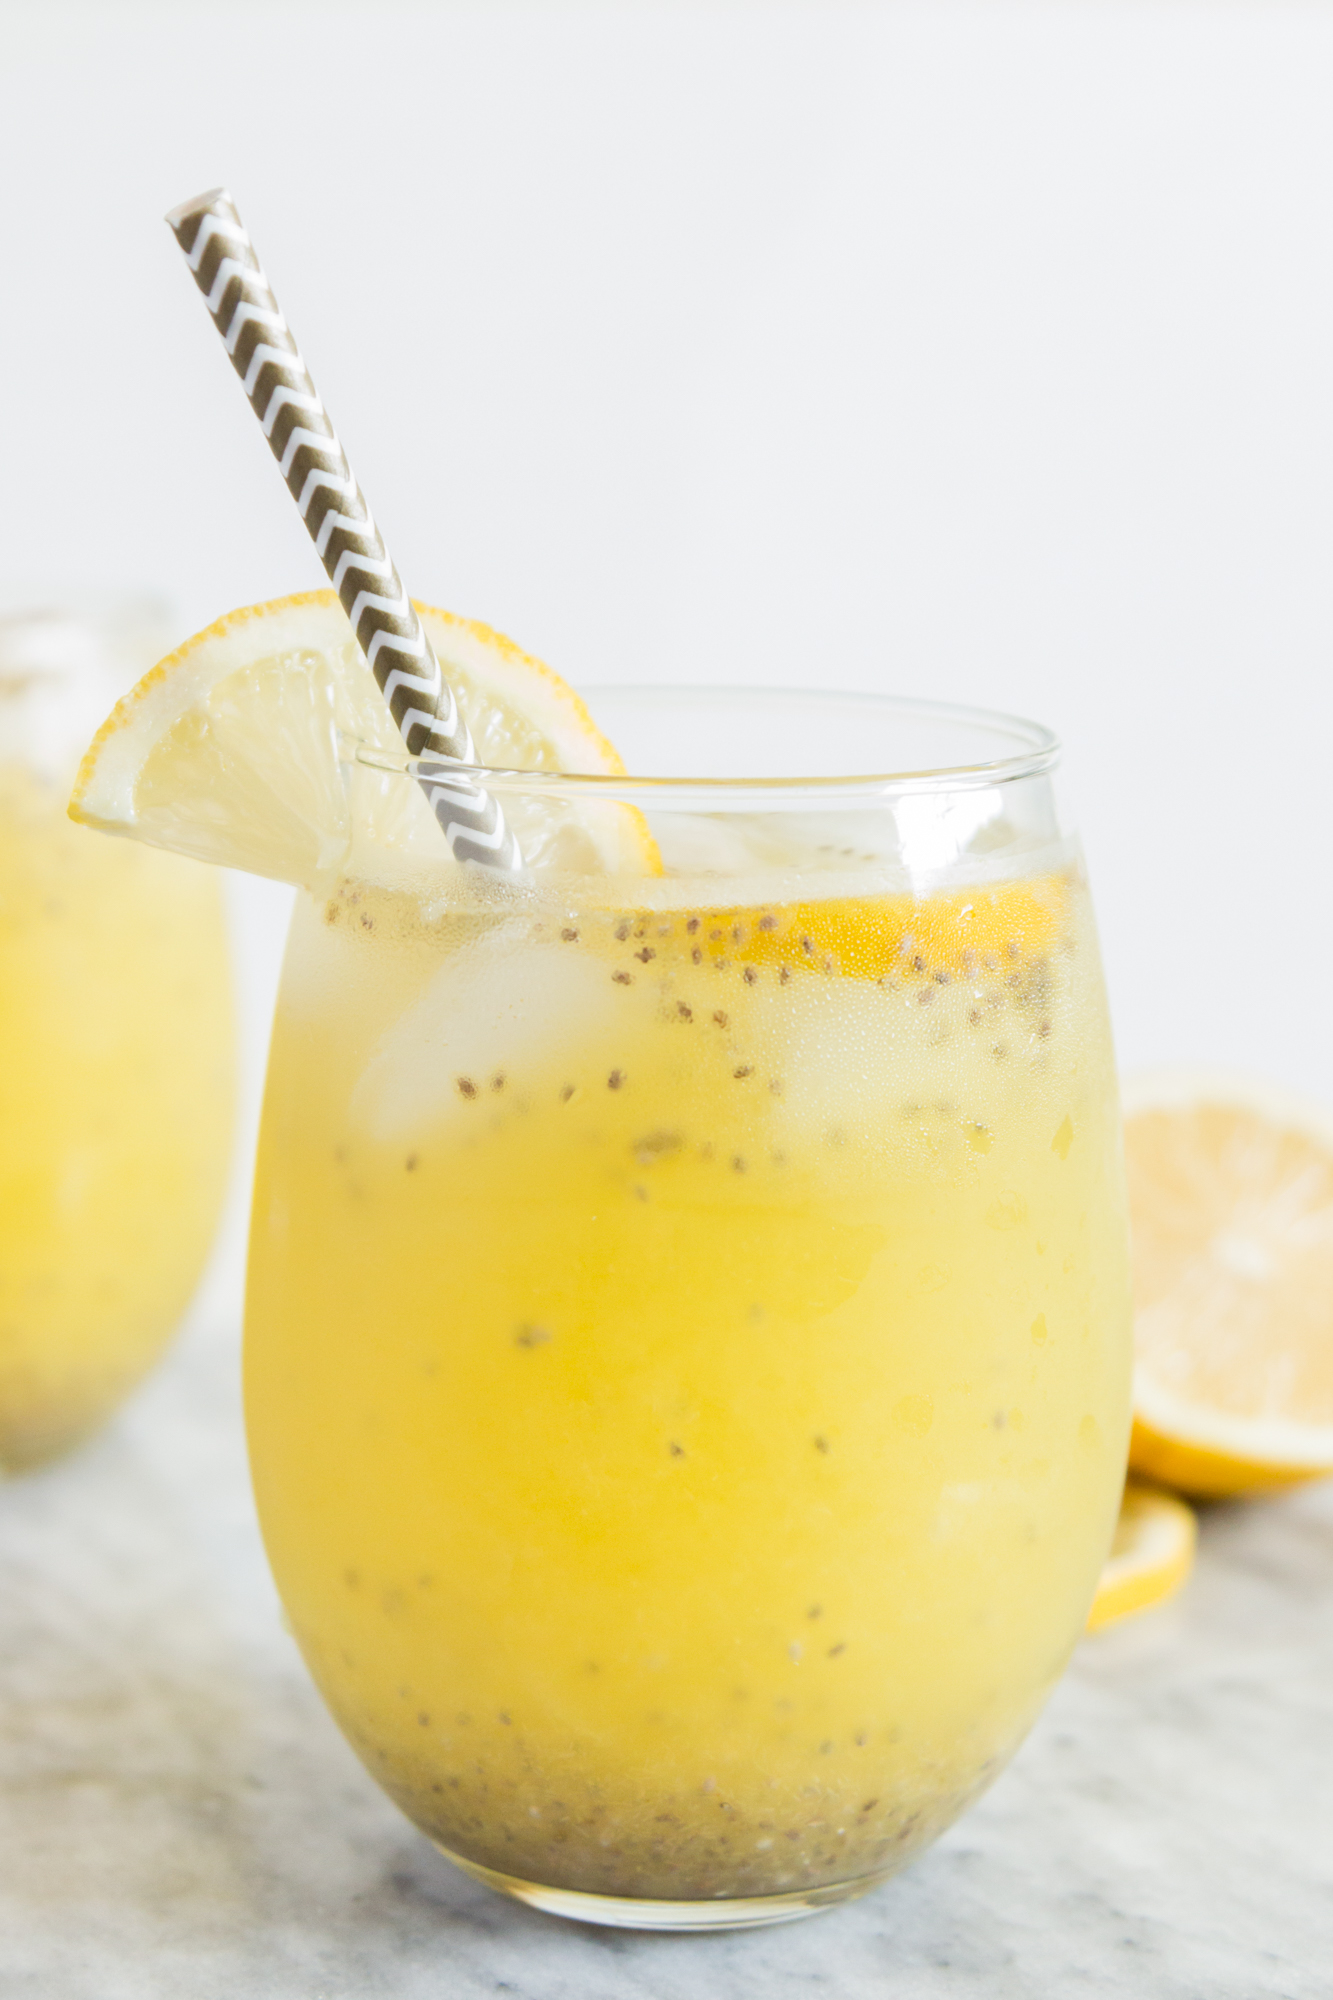 NV_Chia Pineapple Lemonade(2)